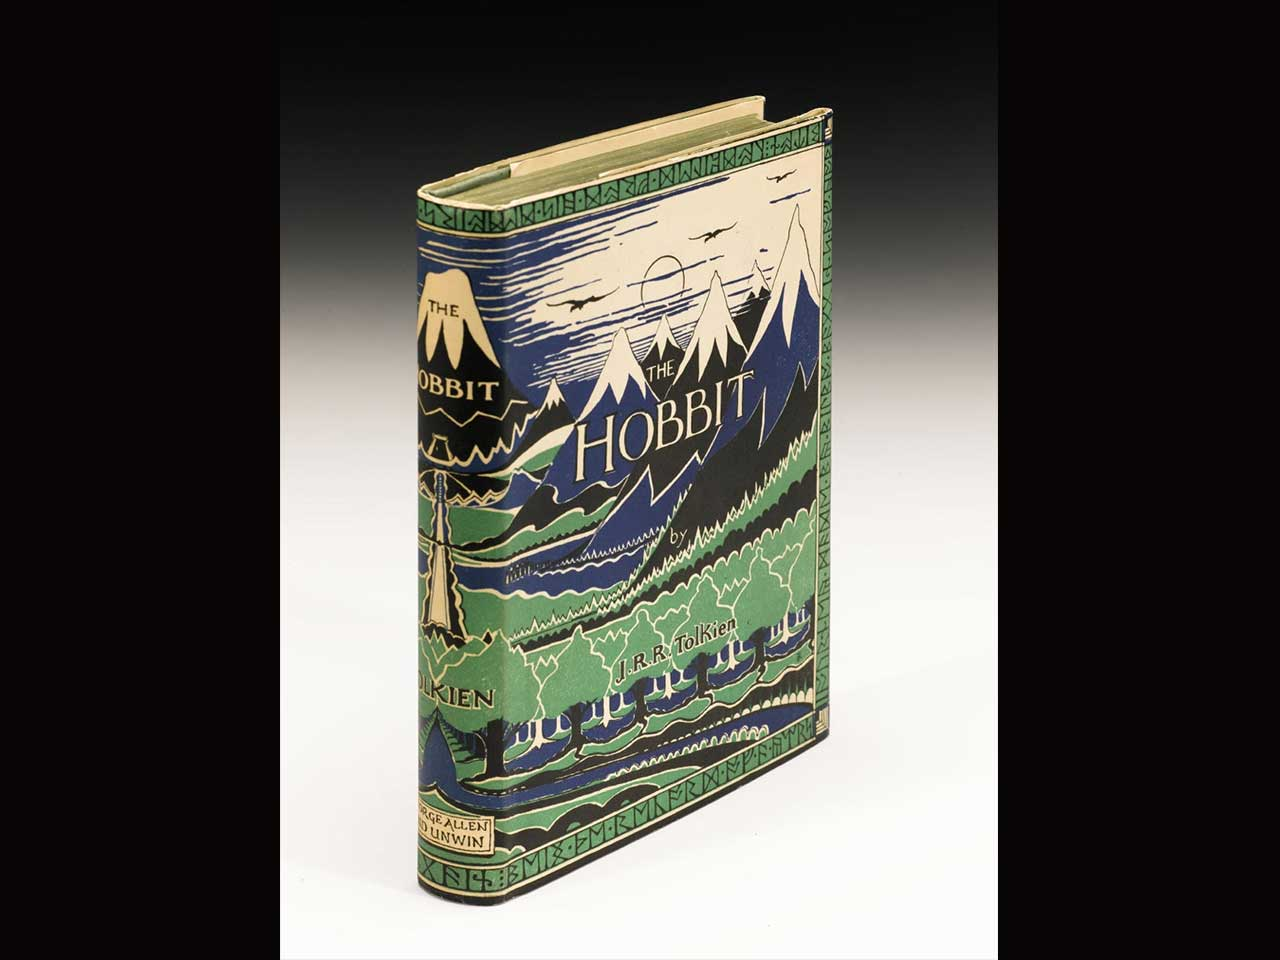 A signed and inscribed first edition of Tolkein's The Hobbit